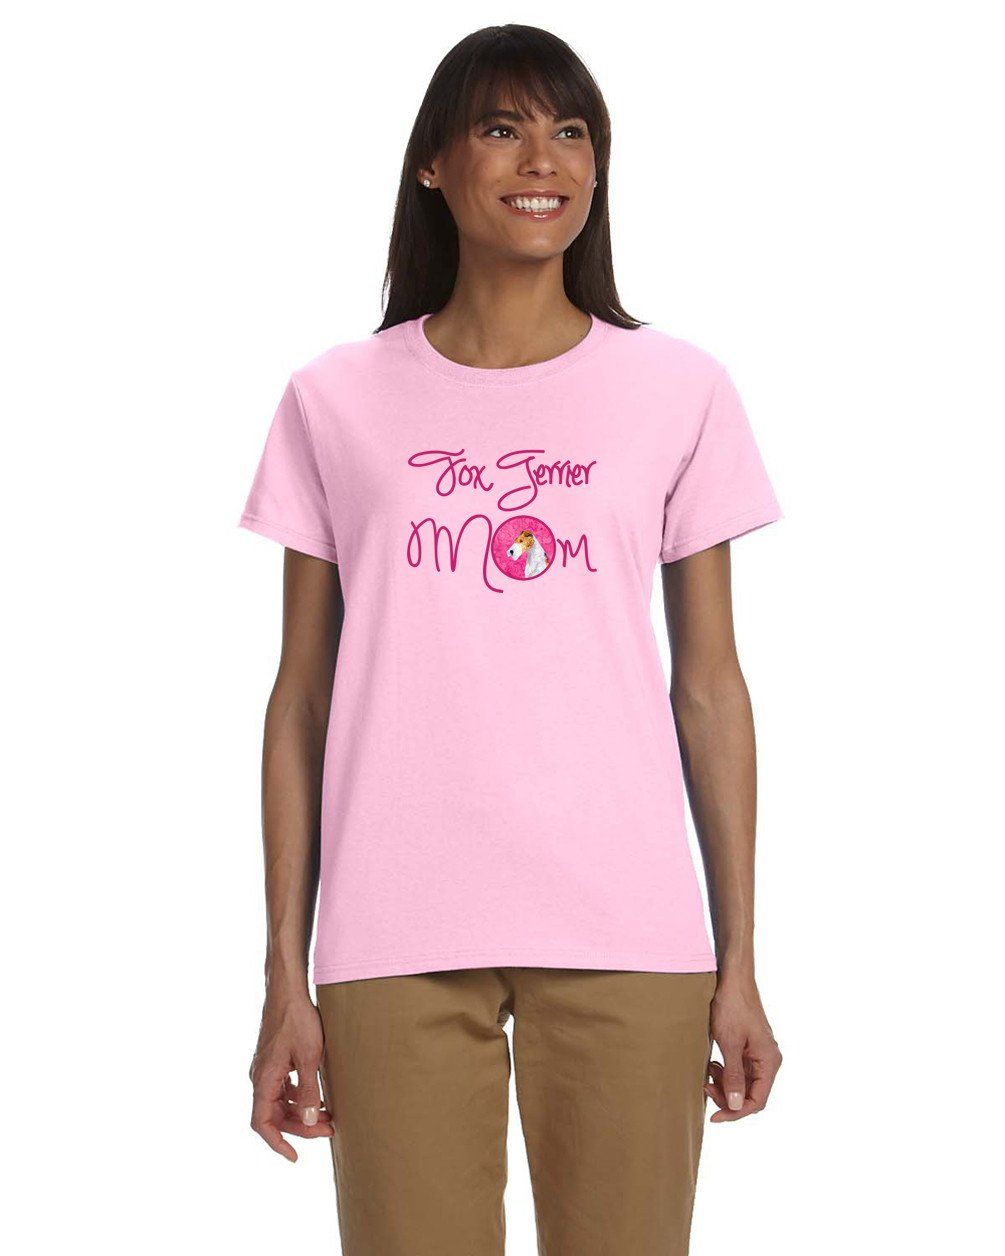 Pink Wire Fox Terrier Mom T-shirt Ladies Cut Short Sleeve ExtraLarge by Caroline's Treasures